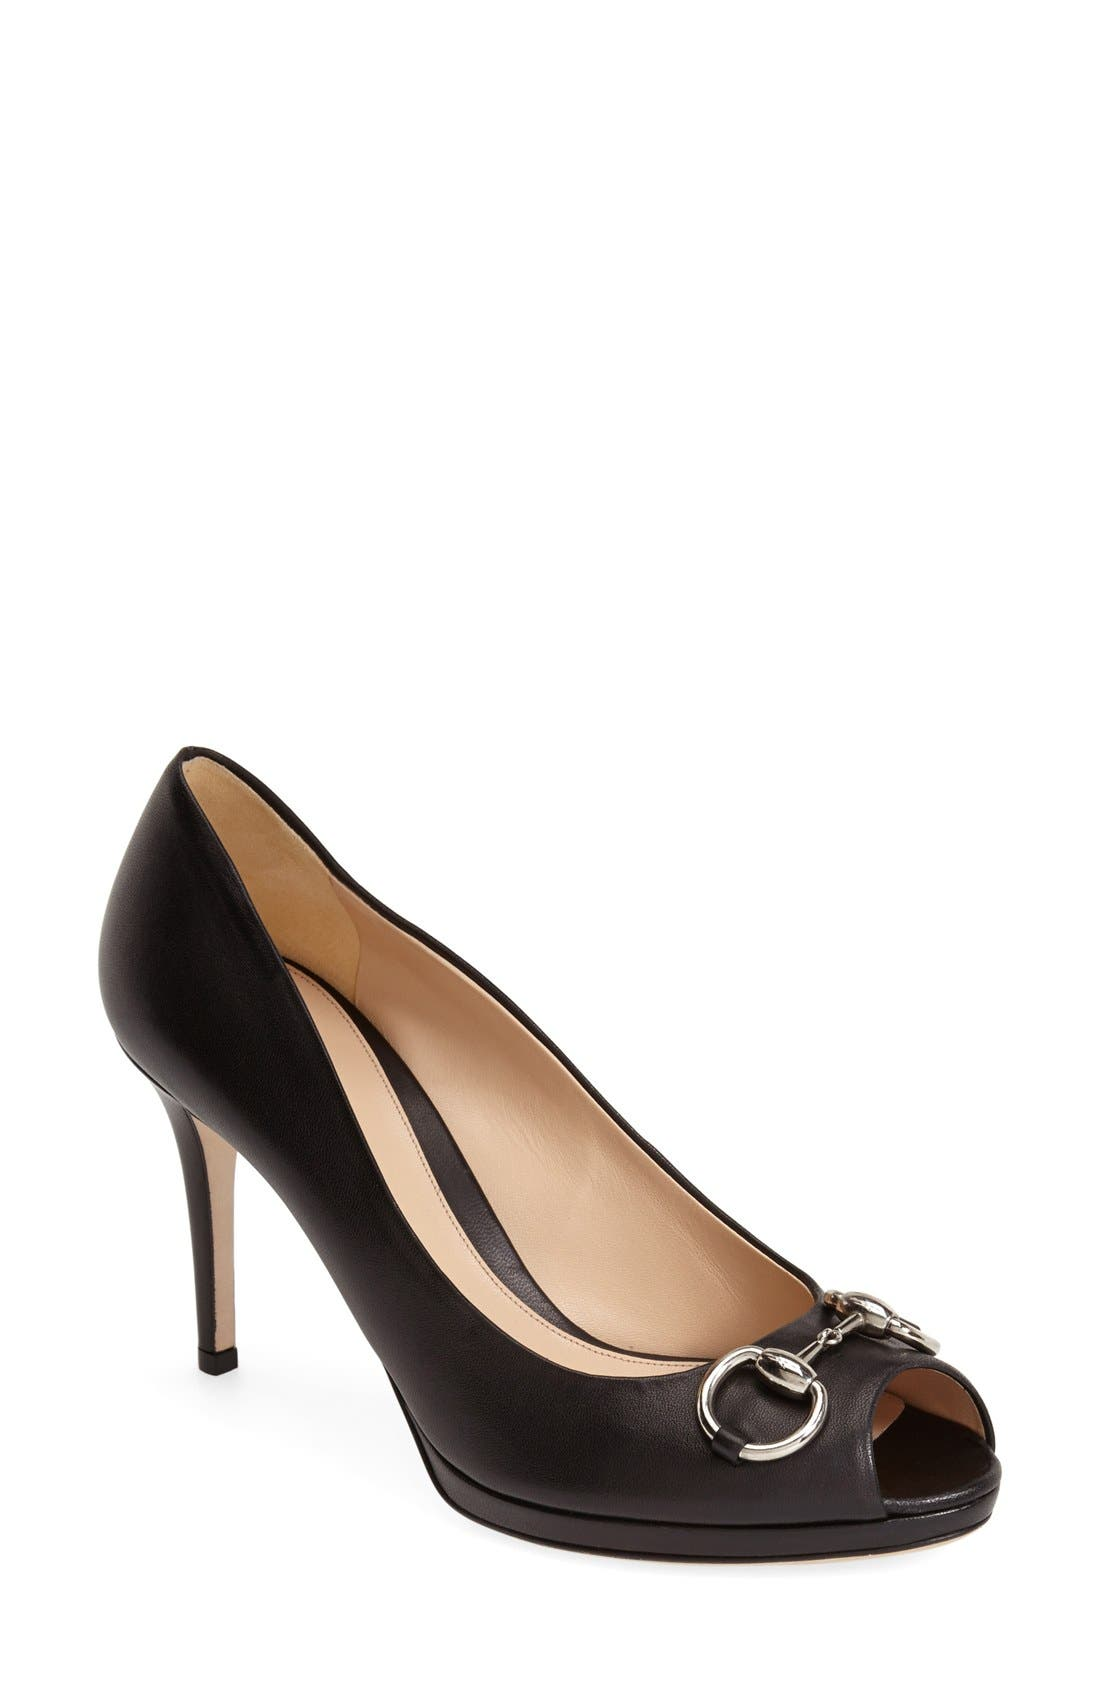 Main Image - Gucci 'New Hollywood' Open Toe Platform Pump